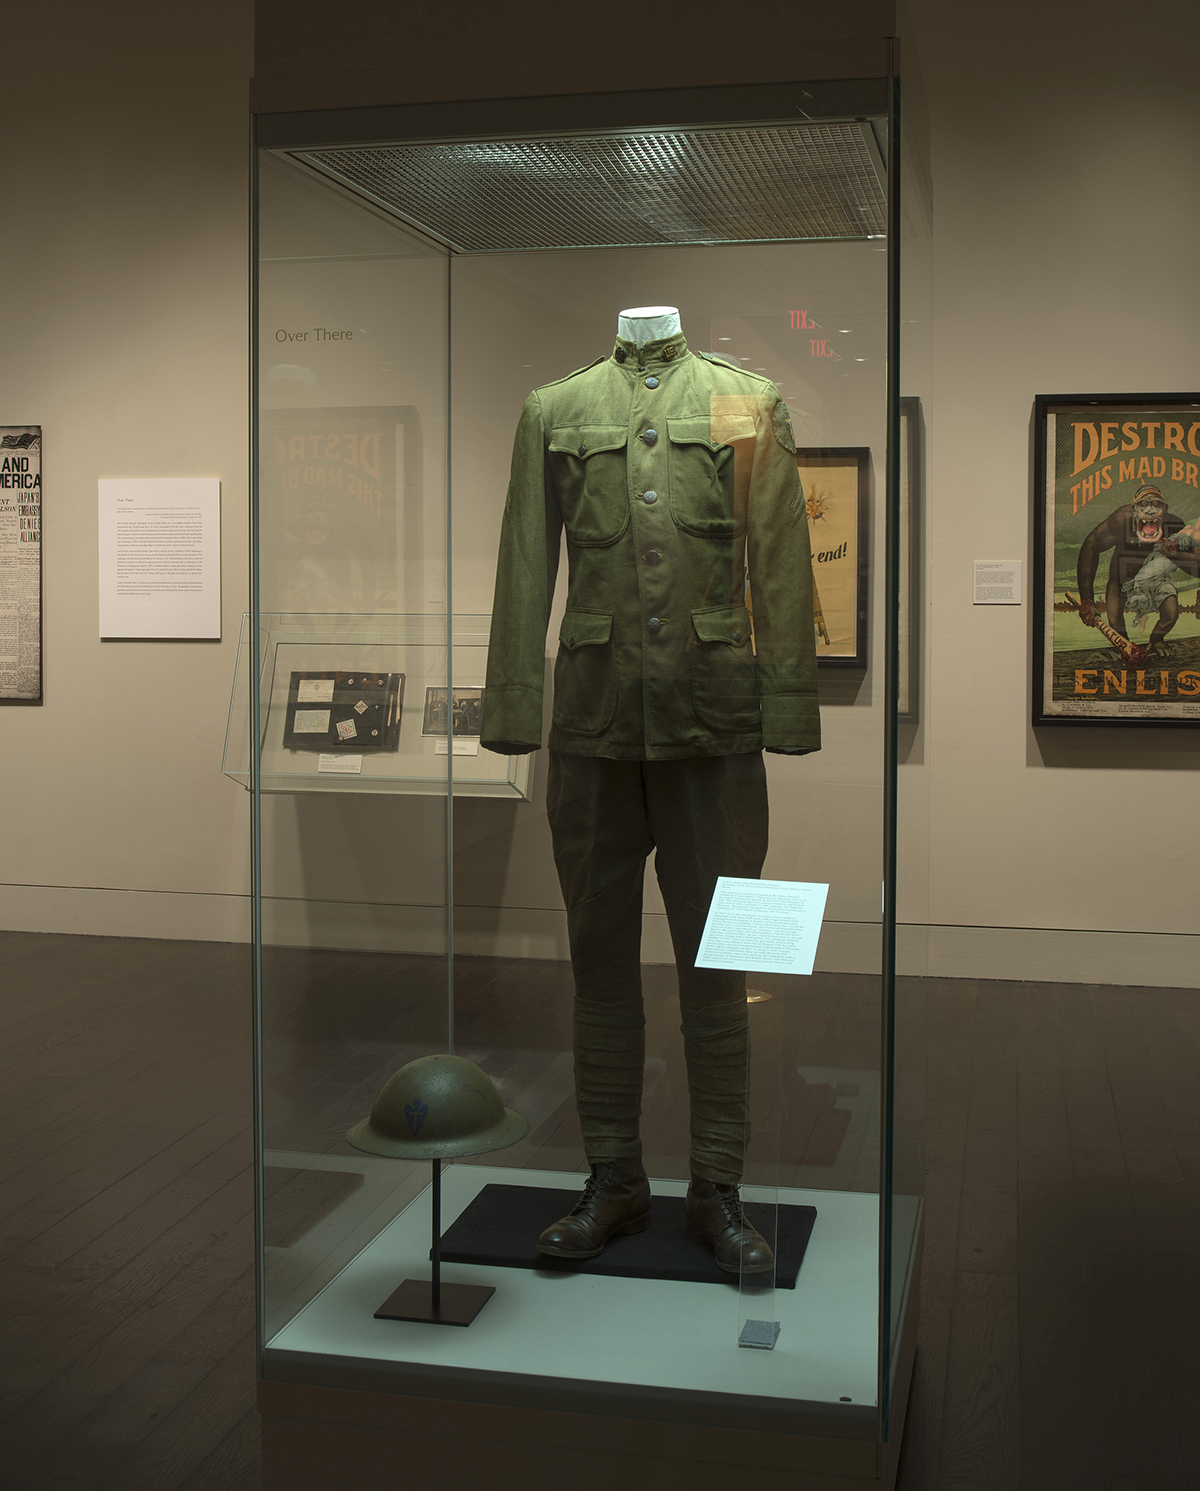 Behind-the-scenes: Customizing a mannequin, from legs to limbs, to display a World War I uniform